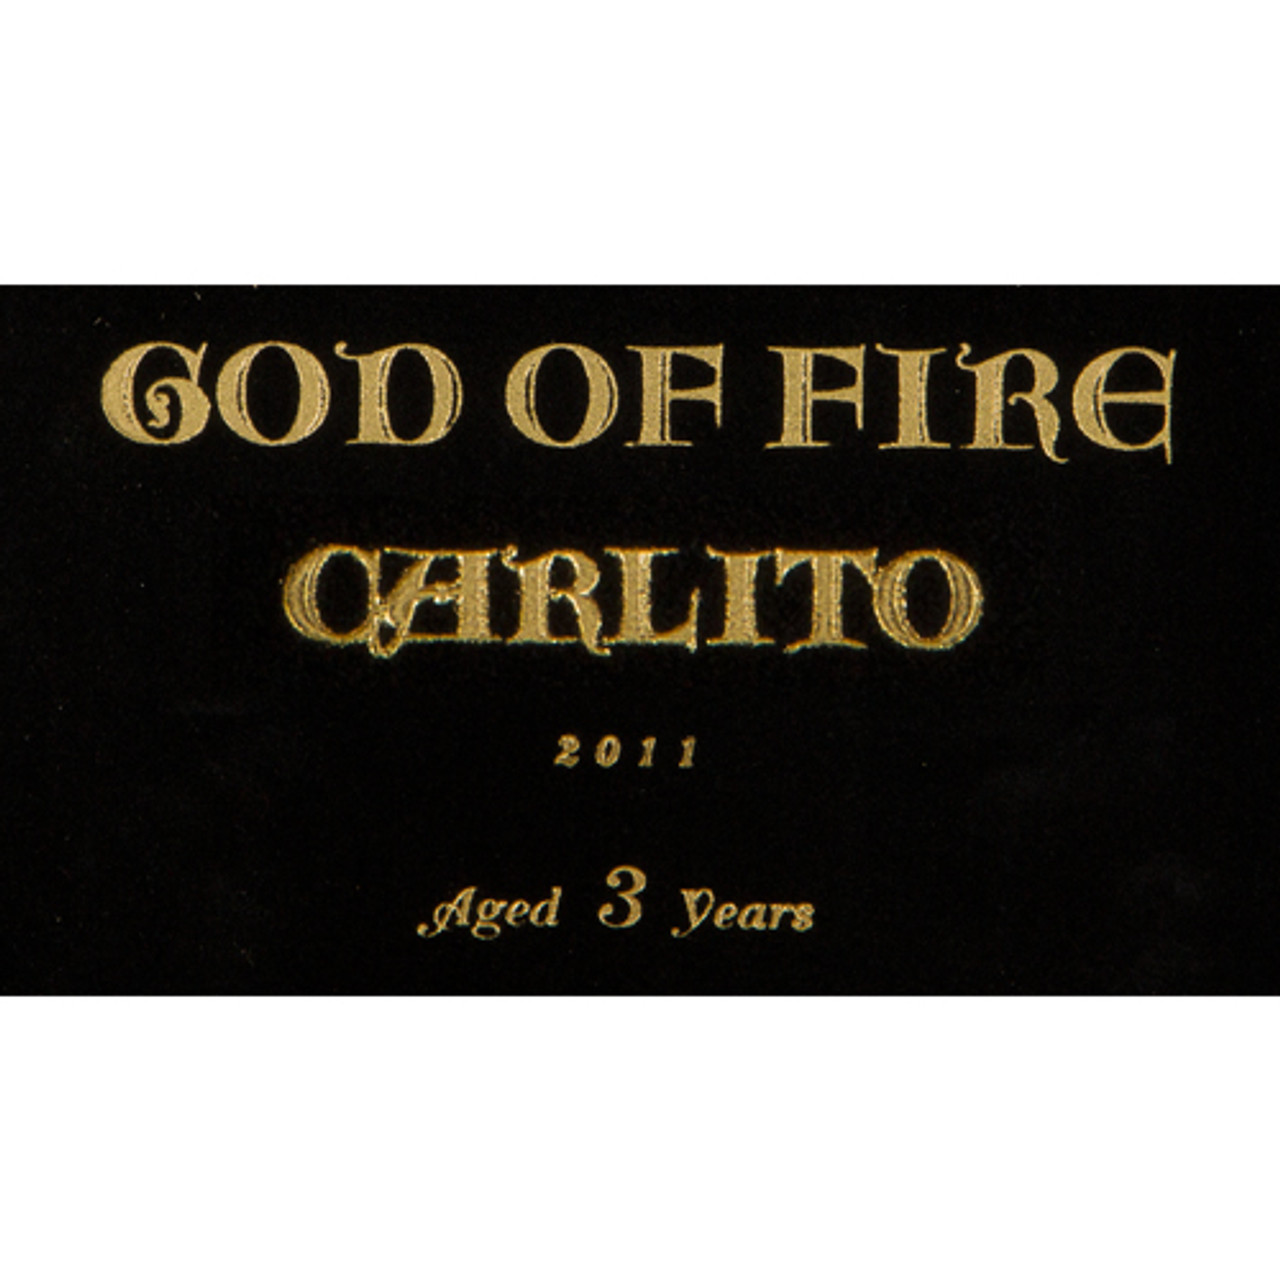 God of Fire by Carlito Double Robusto Cigars - 5.75 x 52 (Box of 10)